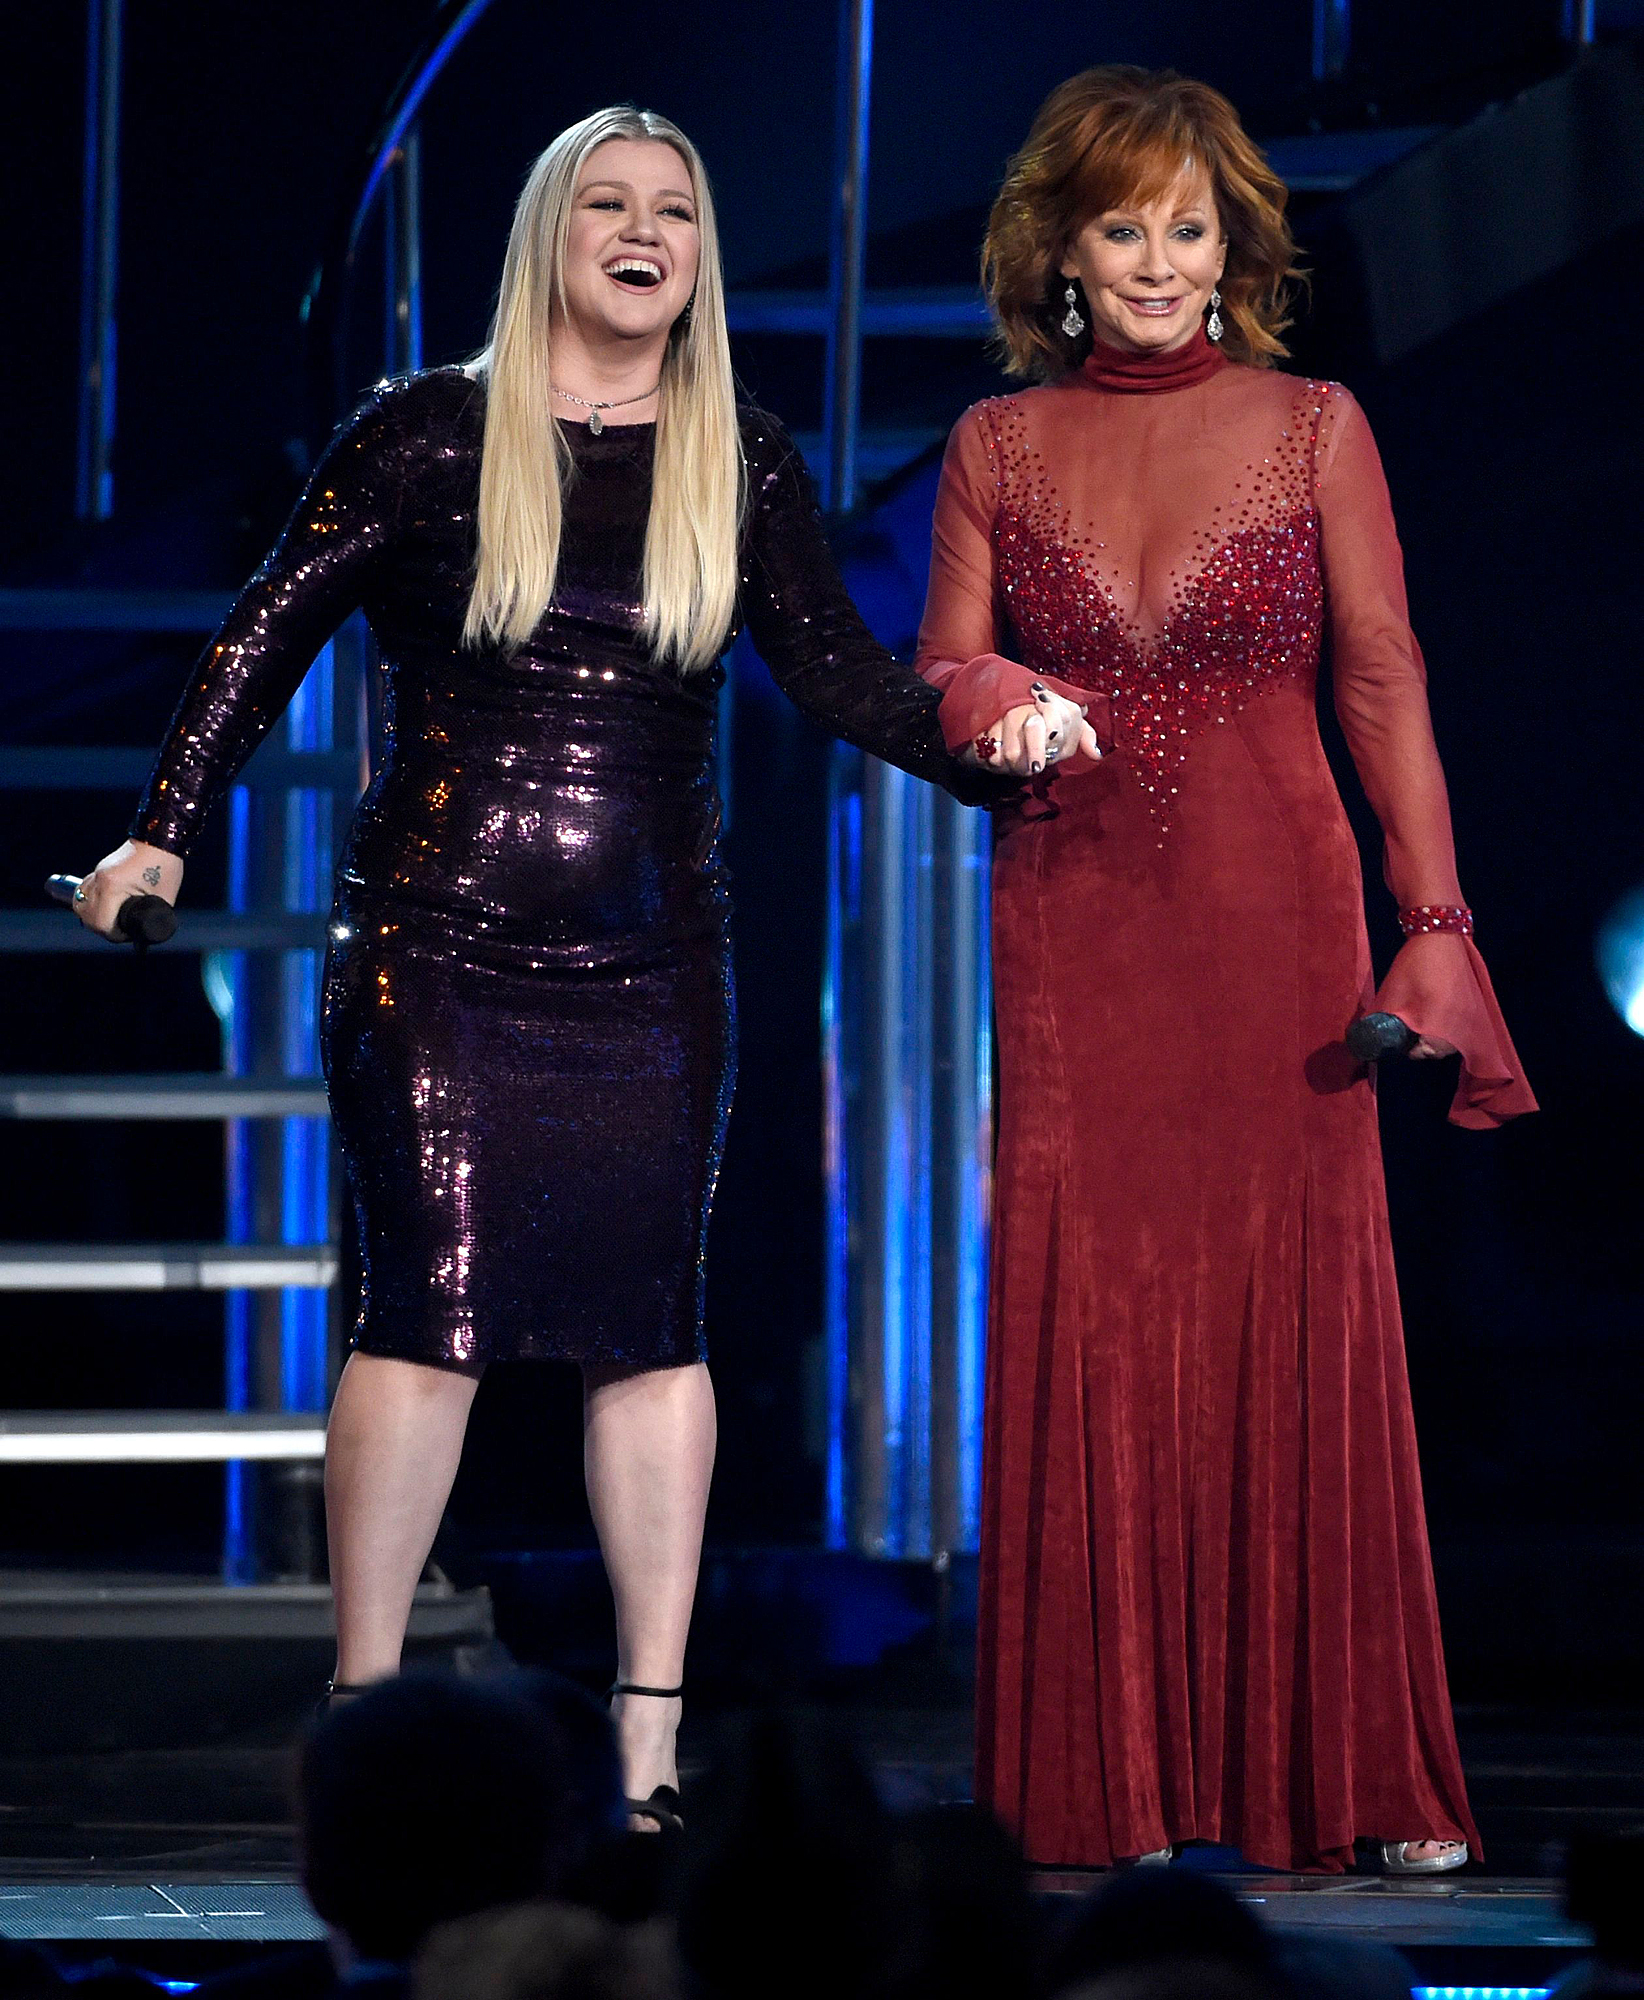 53rd Annual Academy Of Country Music Awards - Show, Las Vegas, USA - 15 Apr 2018